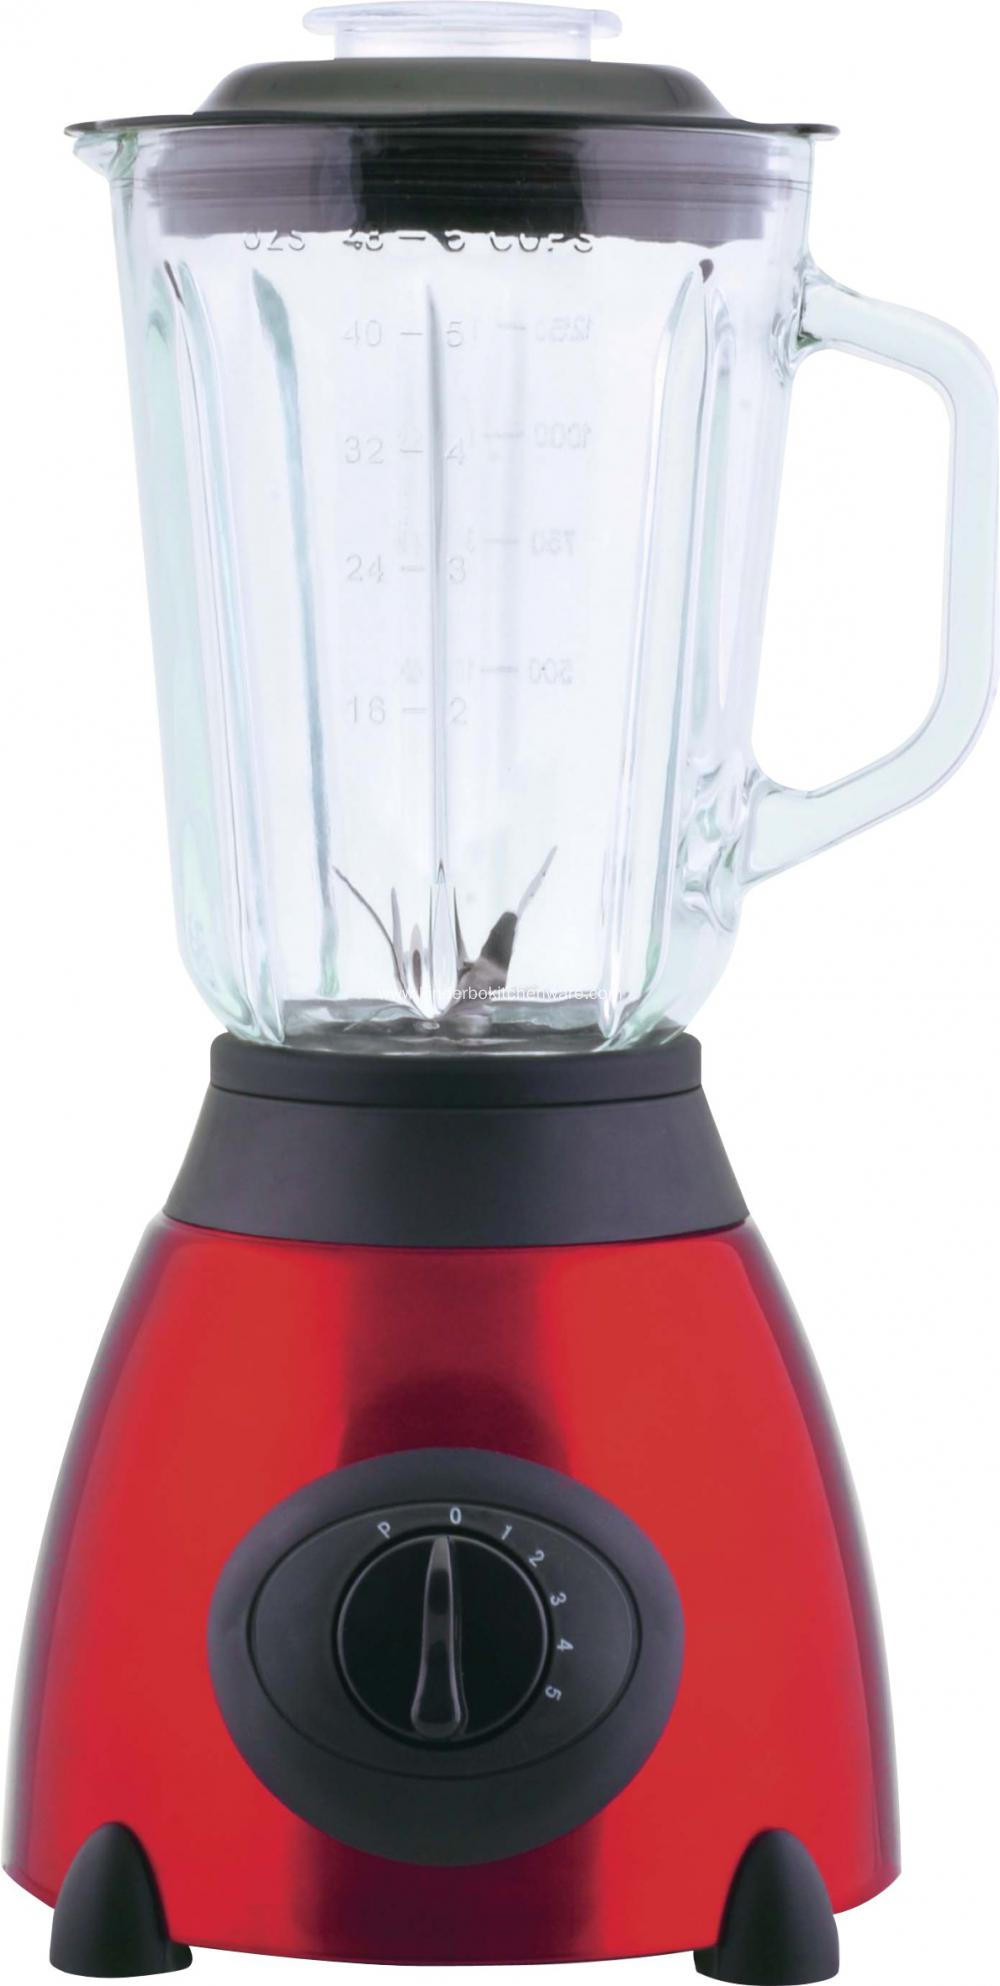 1.5L Stainless Steel Juicer Blender with 4 colors